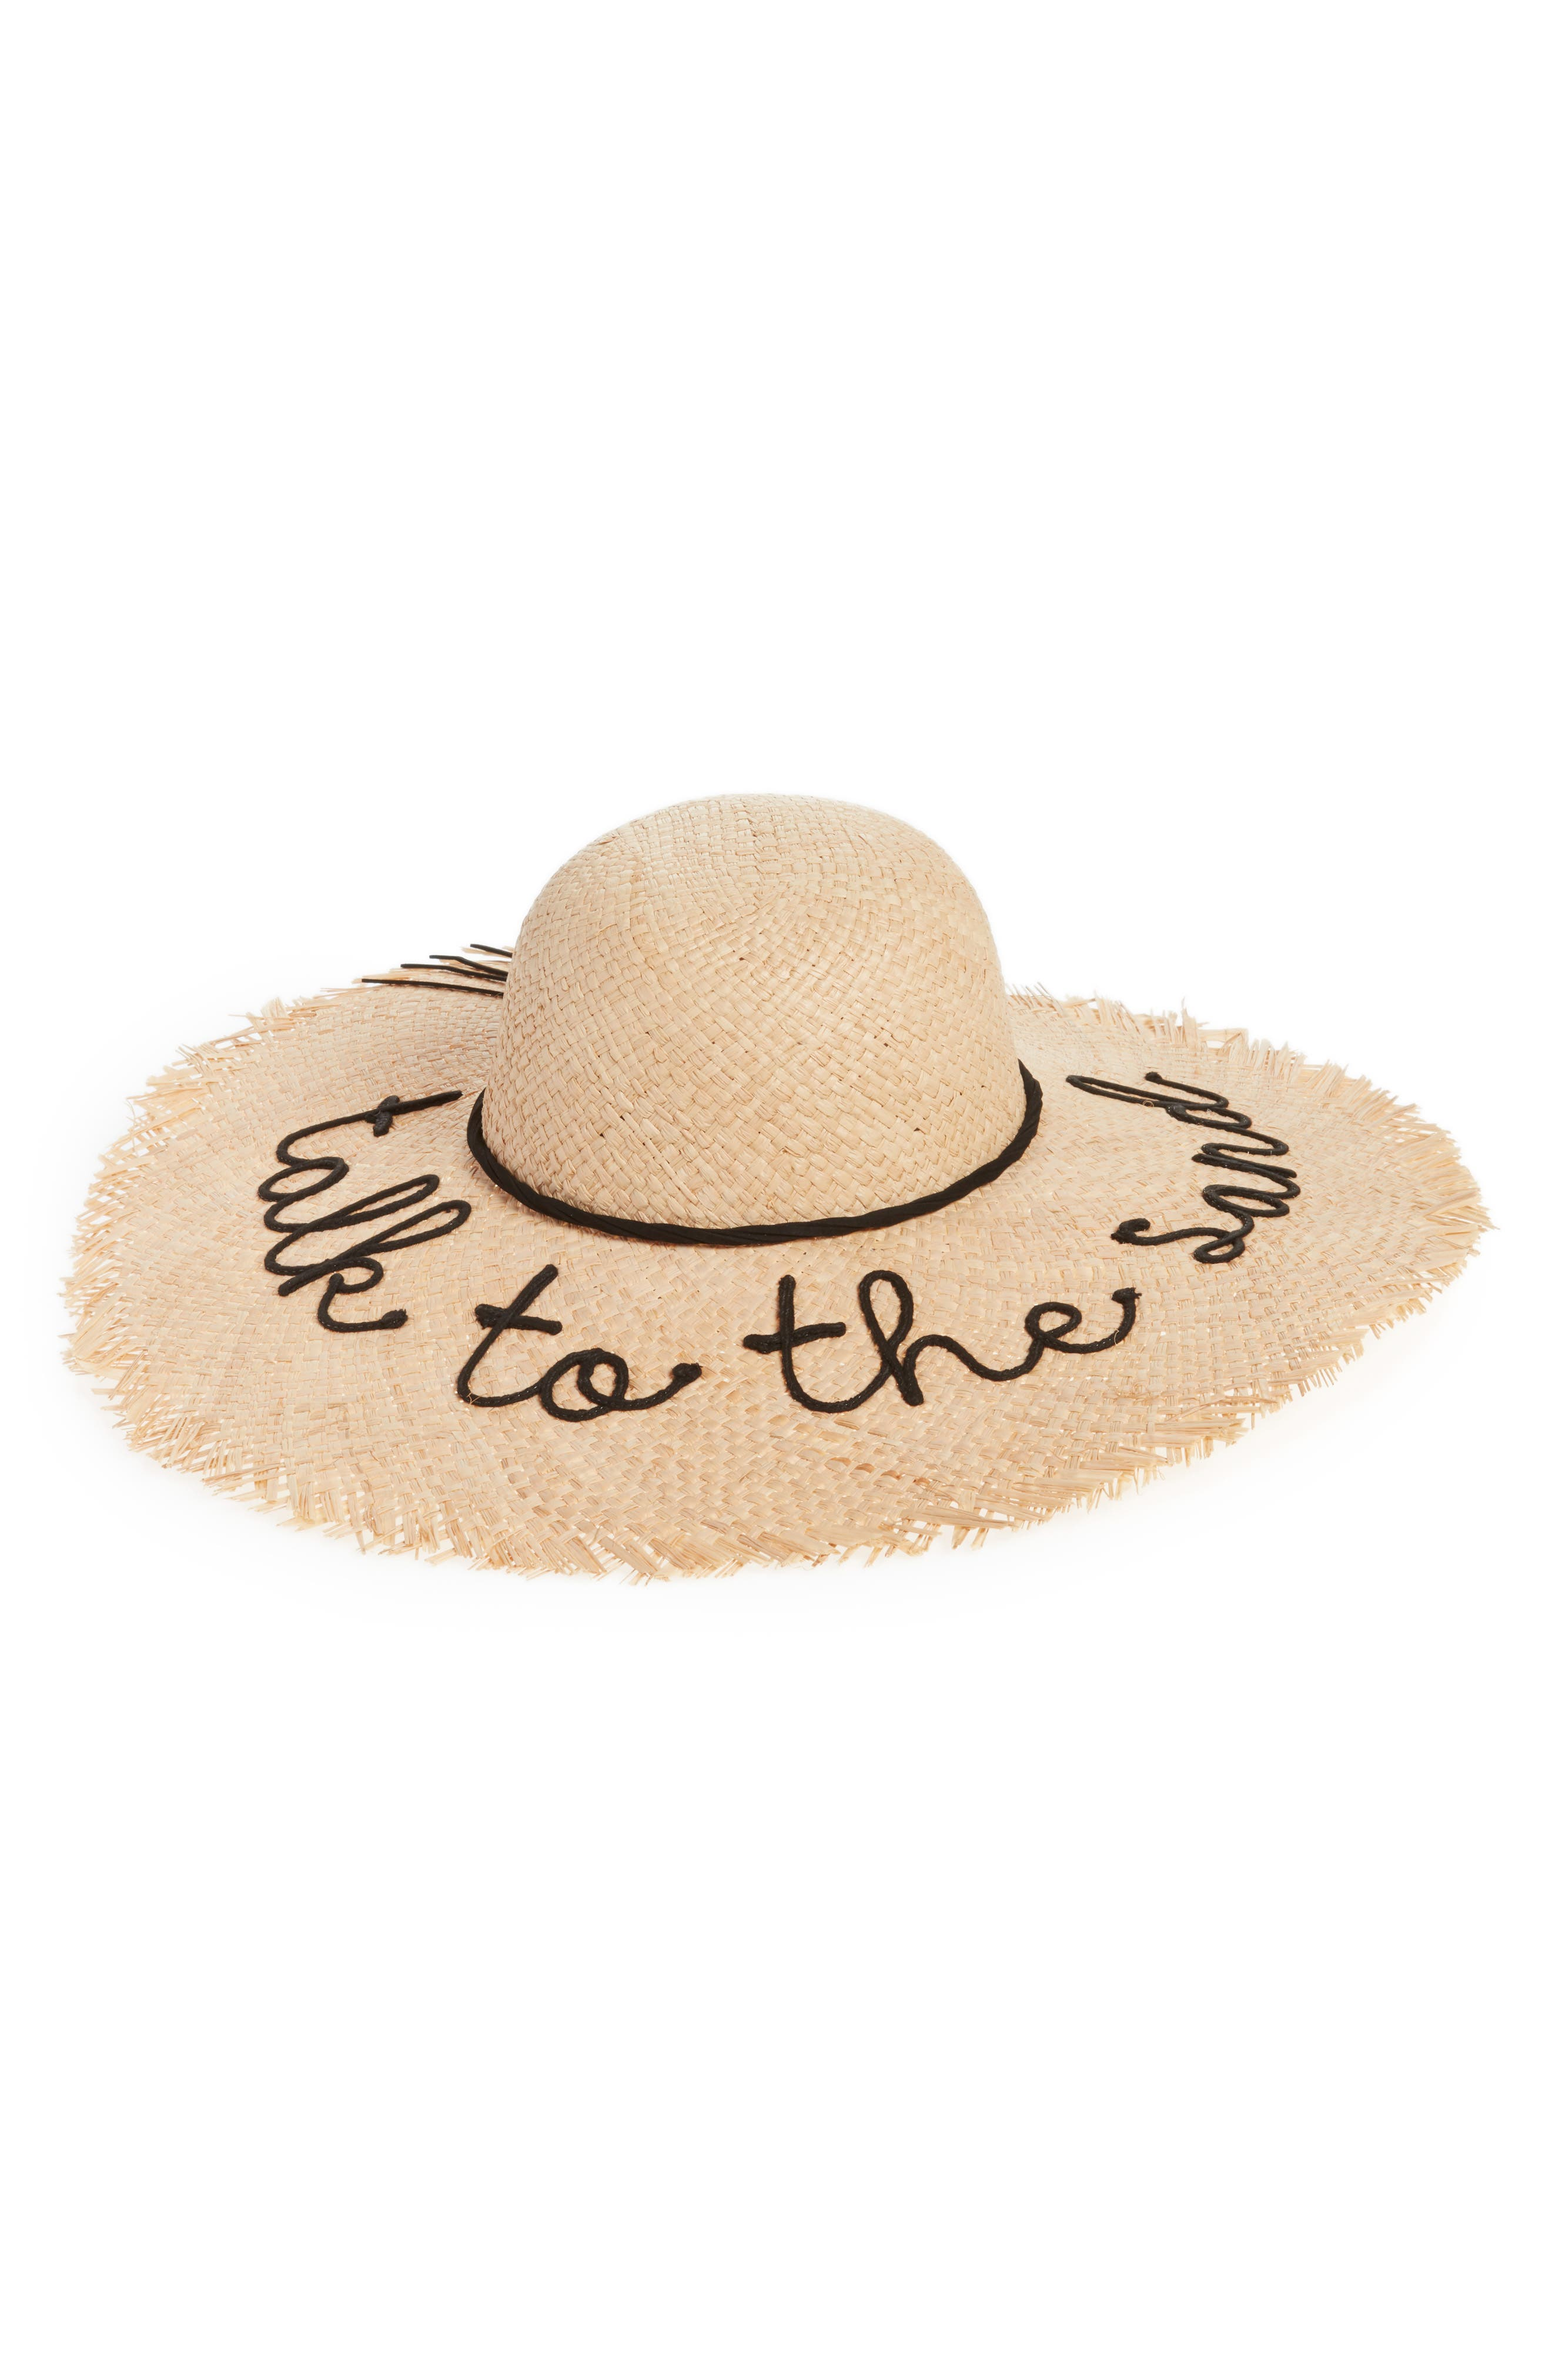 Frayed Edge Floppy Straw Hat,                         Main,                         color, 250